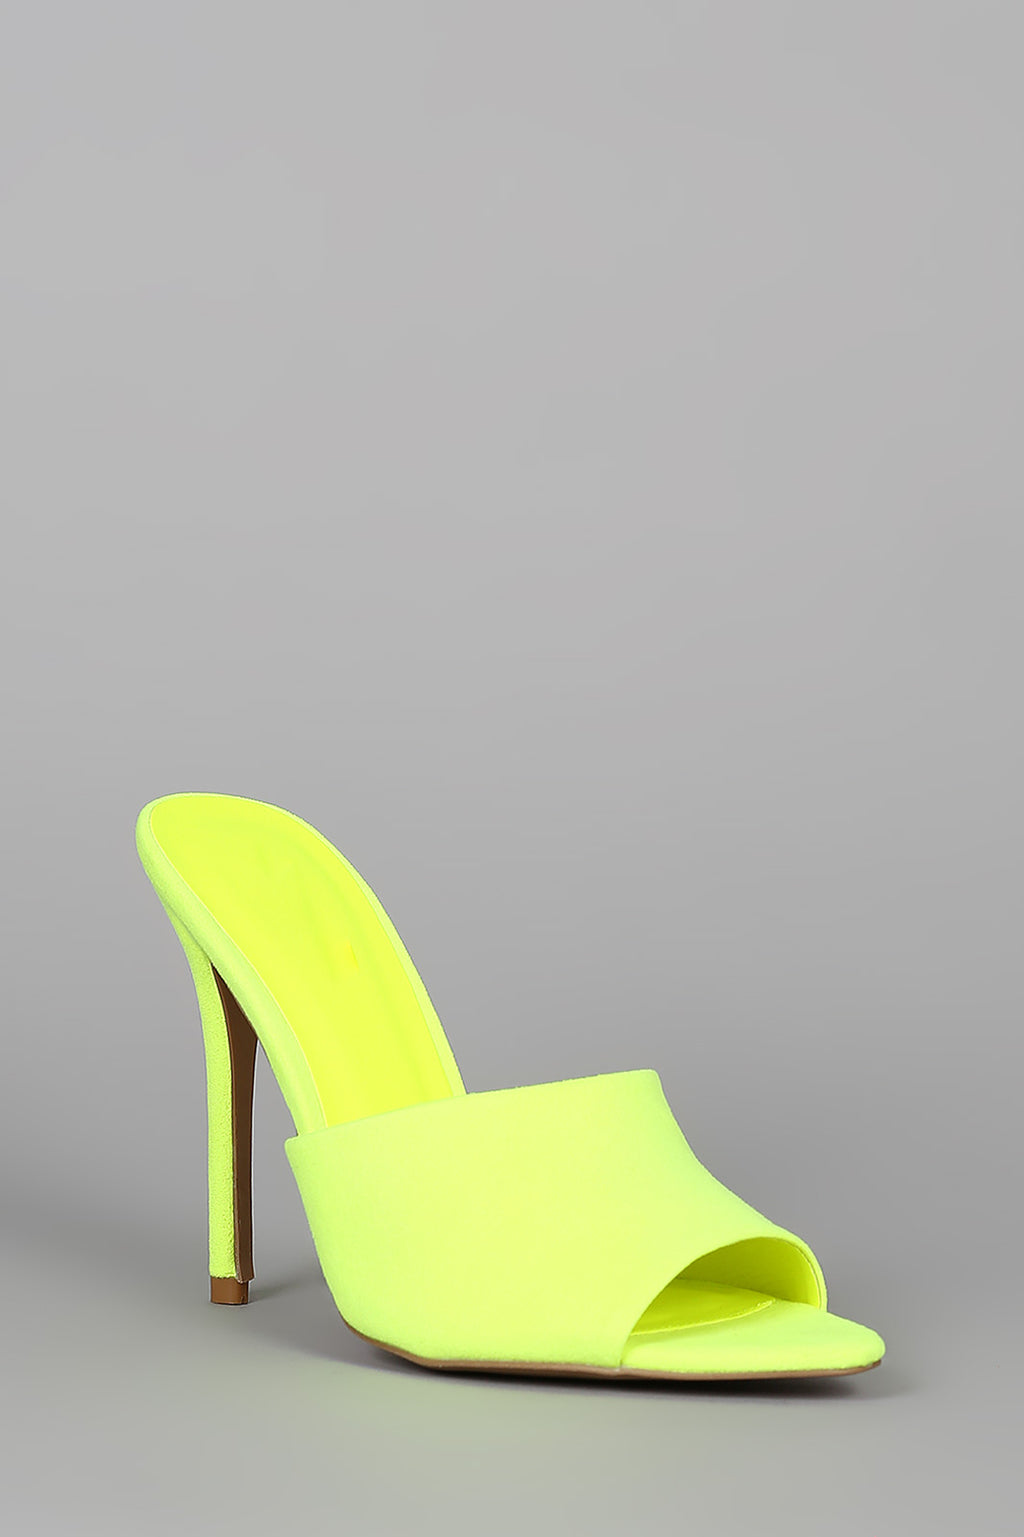 Tease Me - Neon Yellow Stiletto Mule Heels1